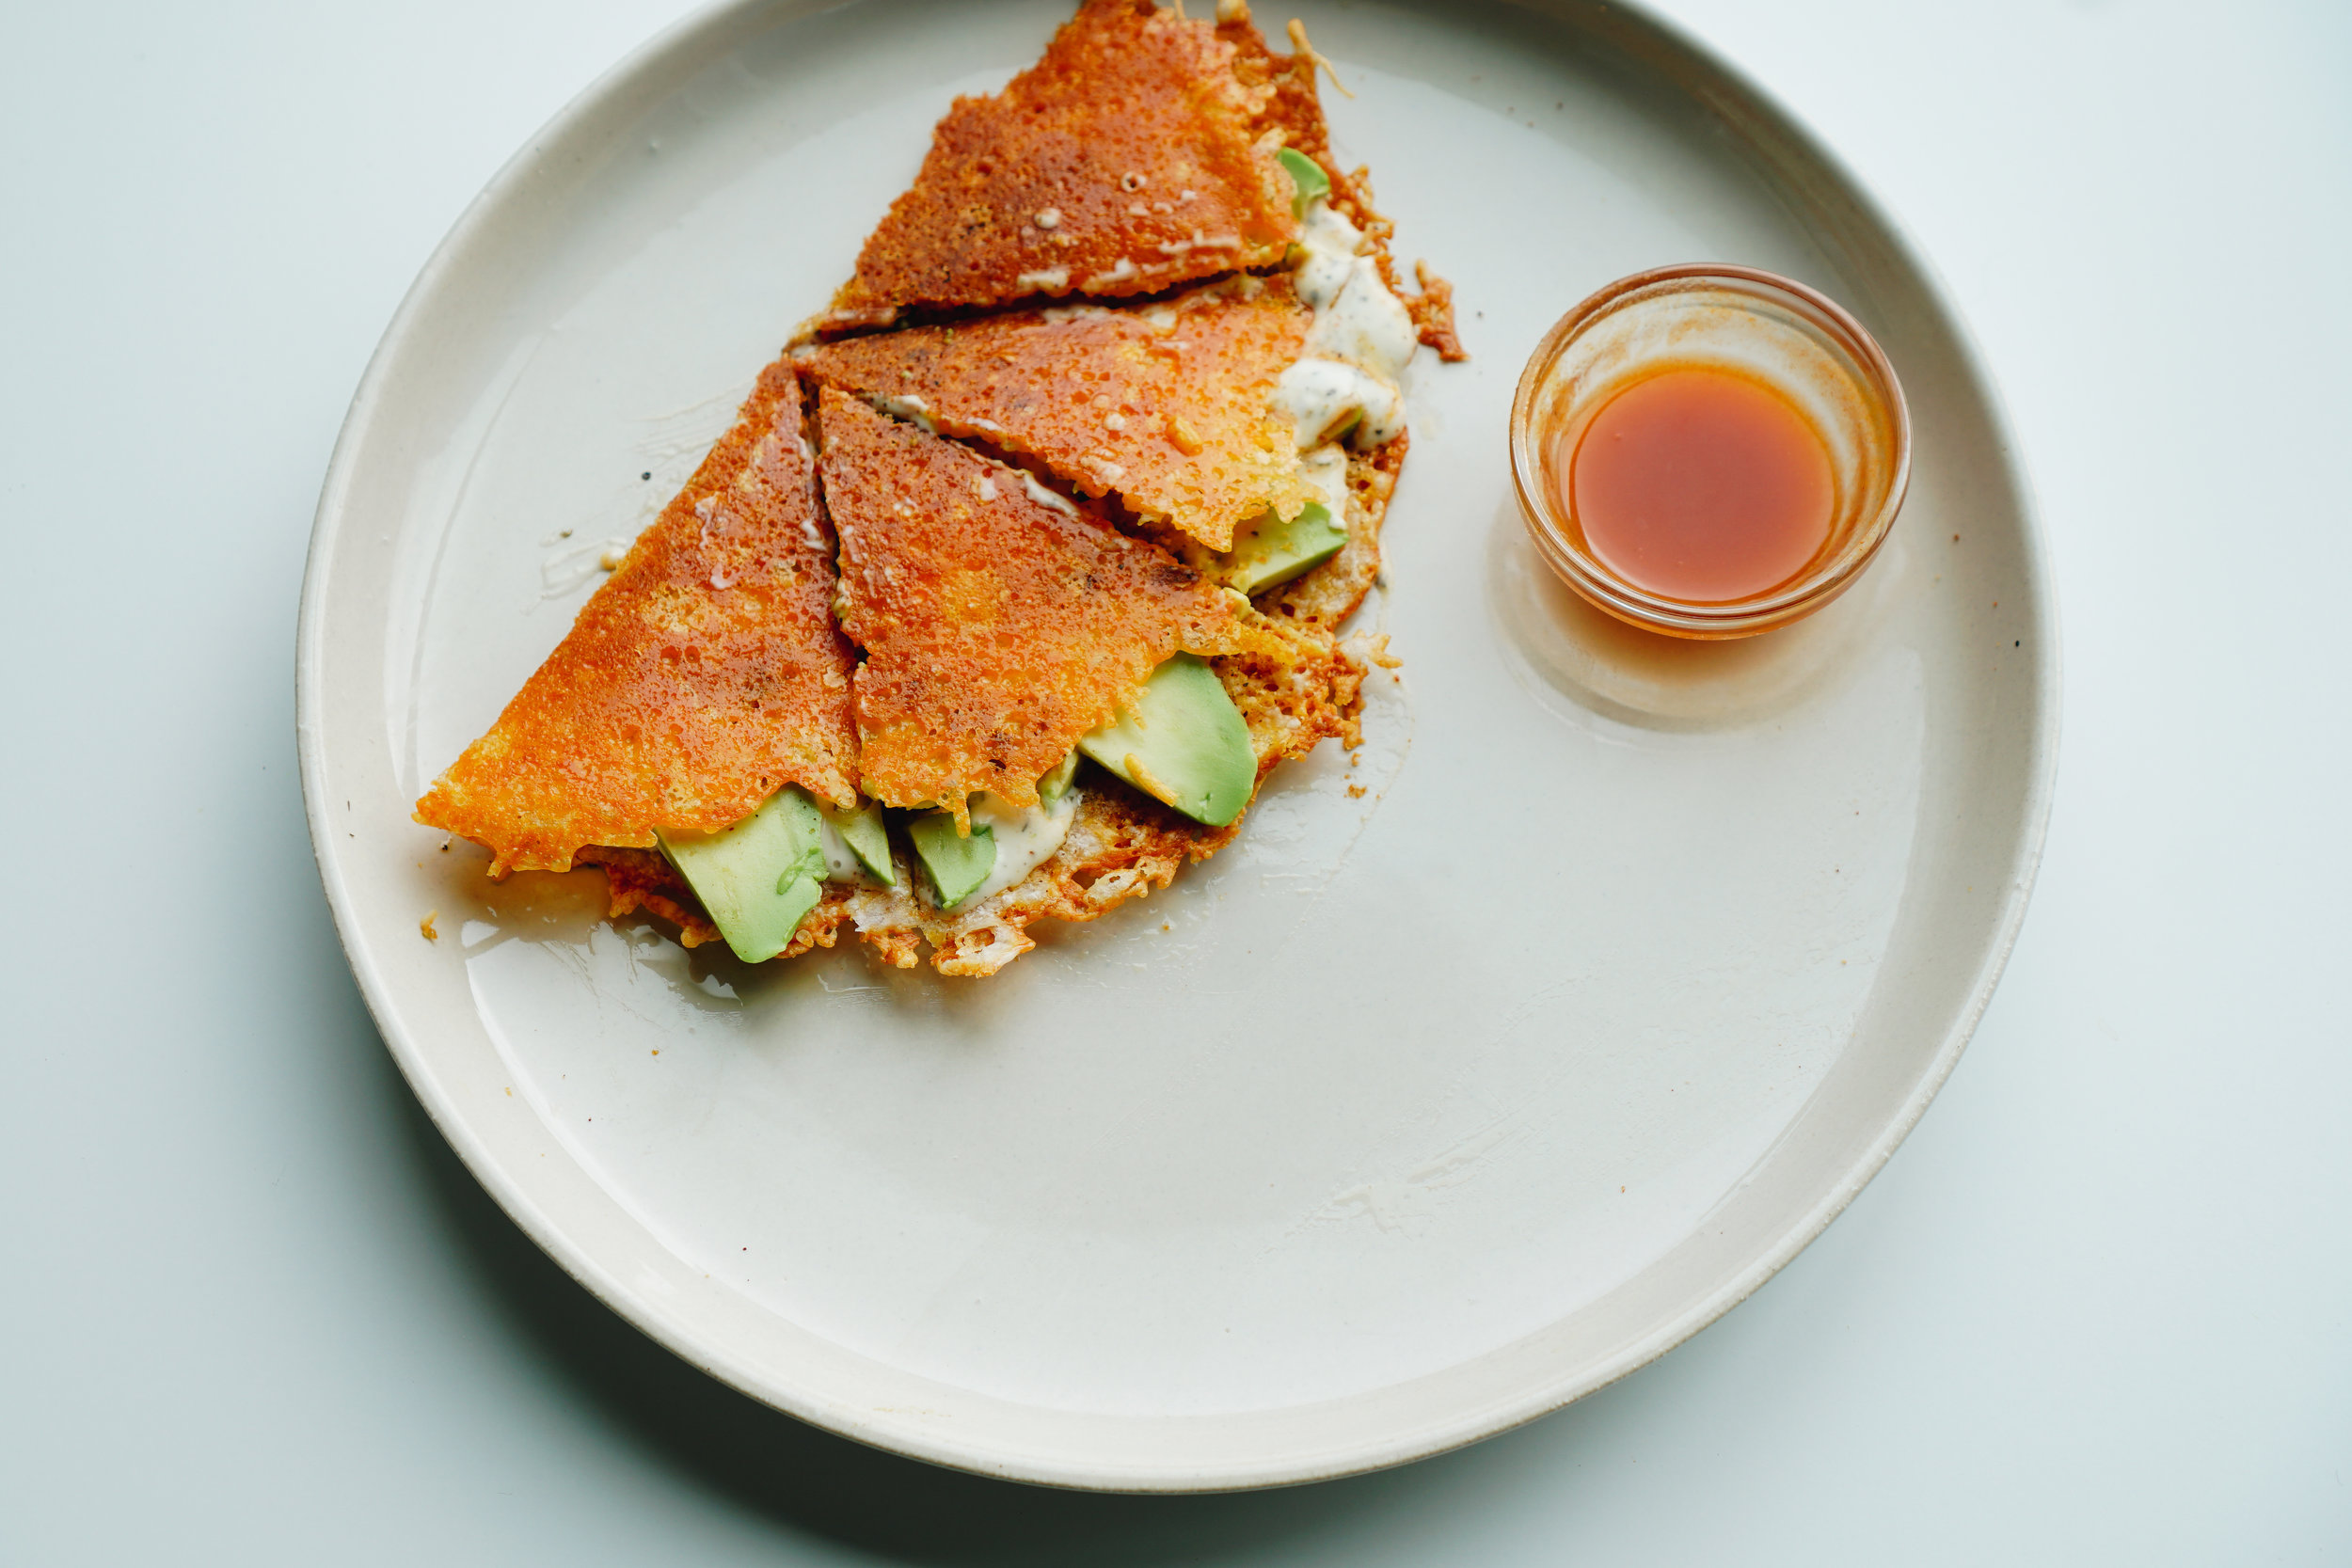 Avocado Quesadilla (Keto-Friendly Recipe) - Keto Recipe, Keto, Gluten Free, Low Carb - www.letsregale.com 12.jpg